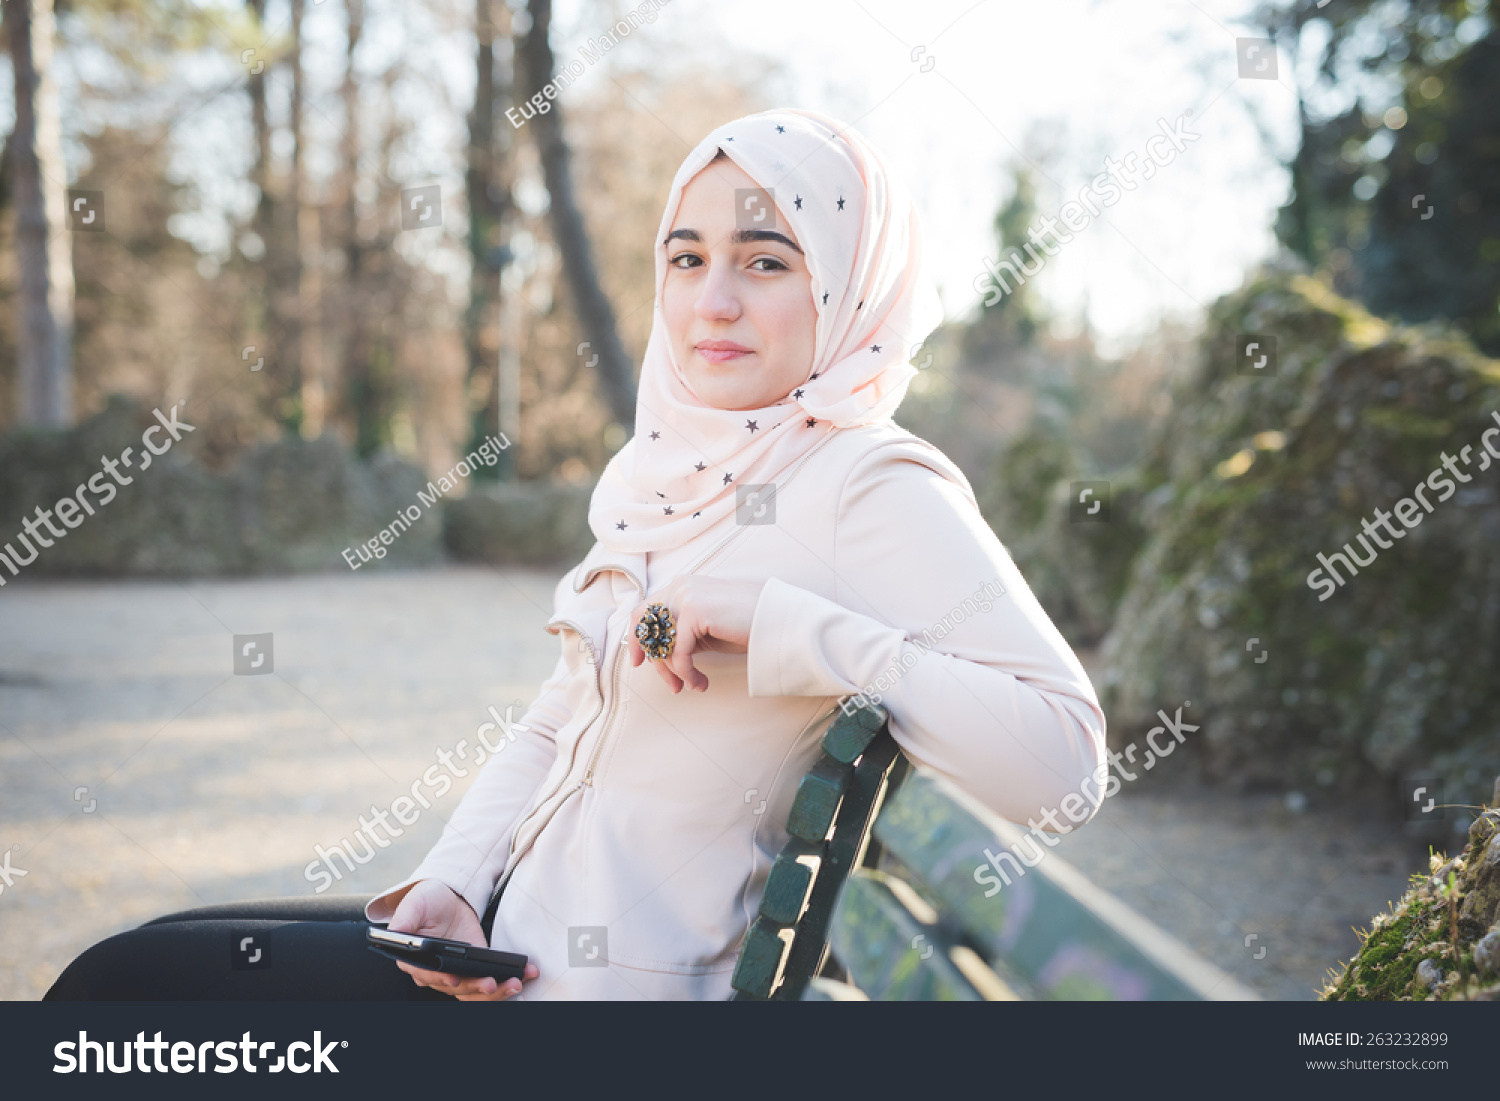 spring park muslim girl personals Find women seeking men listings on oodle classifieds join millions of people using oodle to find great personal ads  text me 724 731 xxxx when i am ofline i am a open minded girl,, 1.